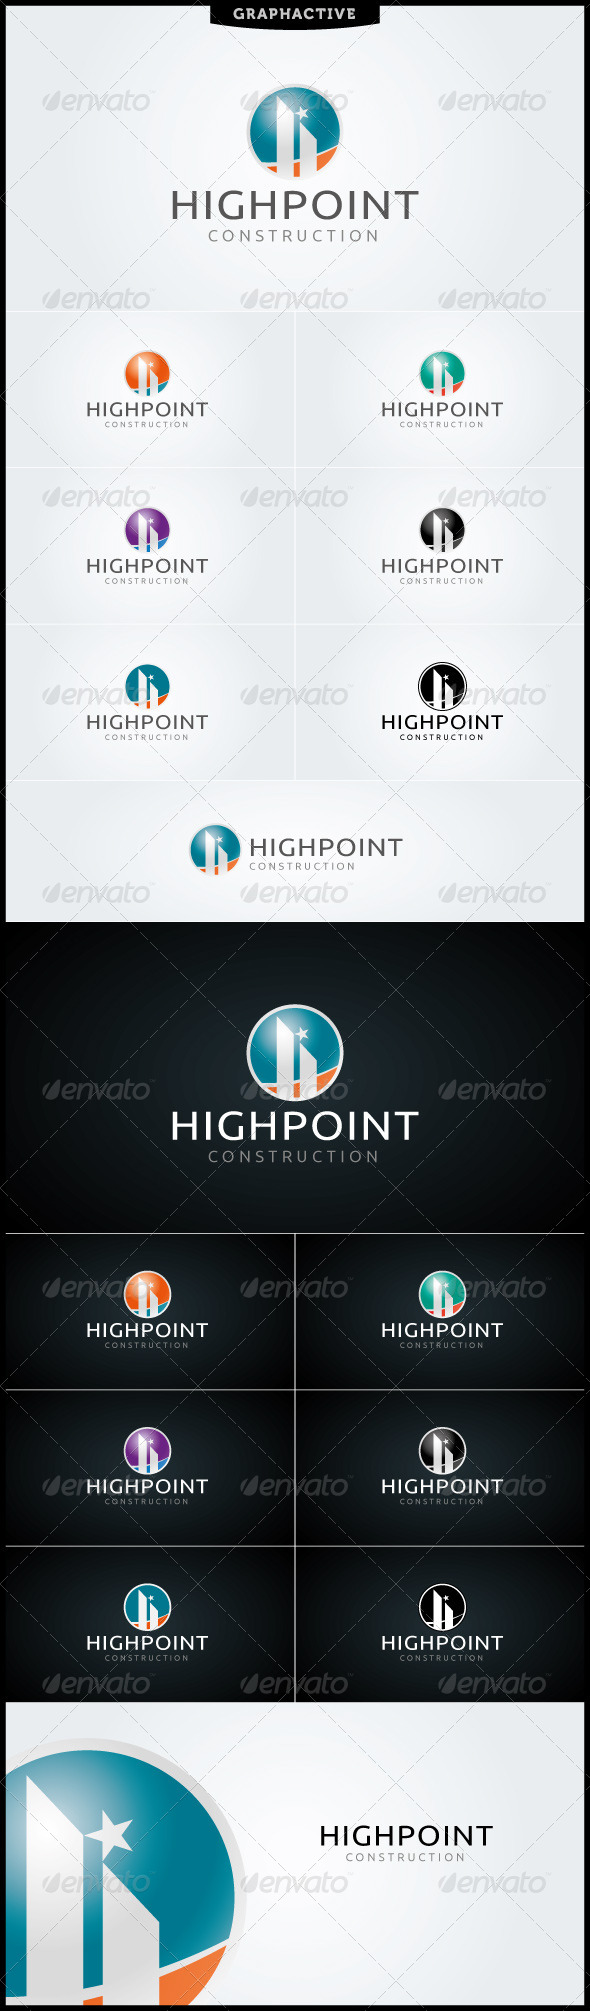 GraphicRiver HighPoint Logo Template 4013270